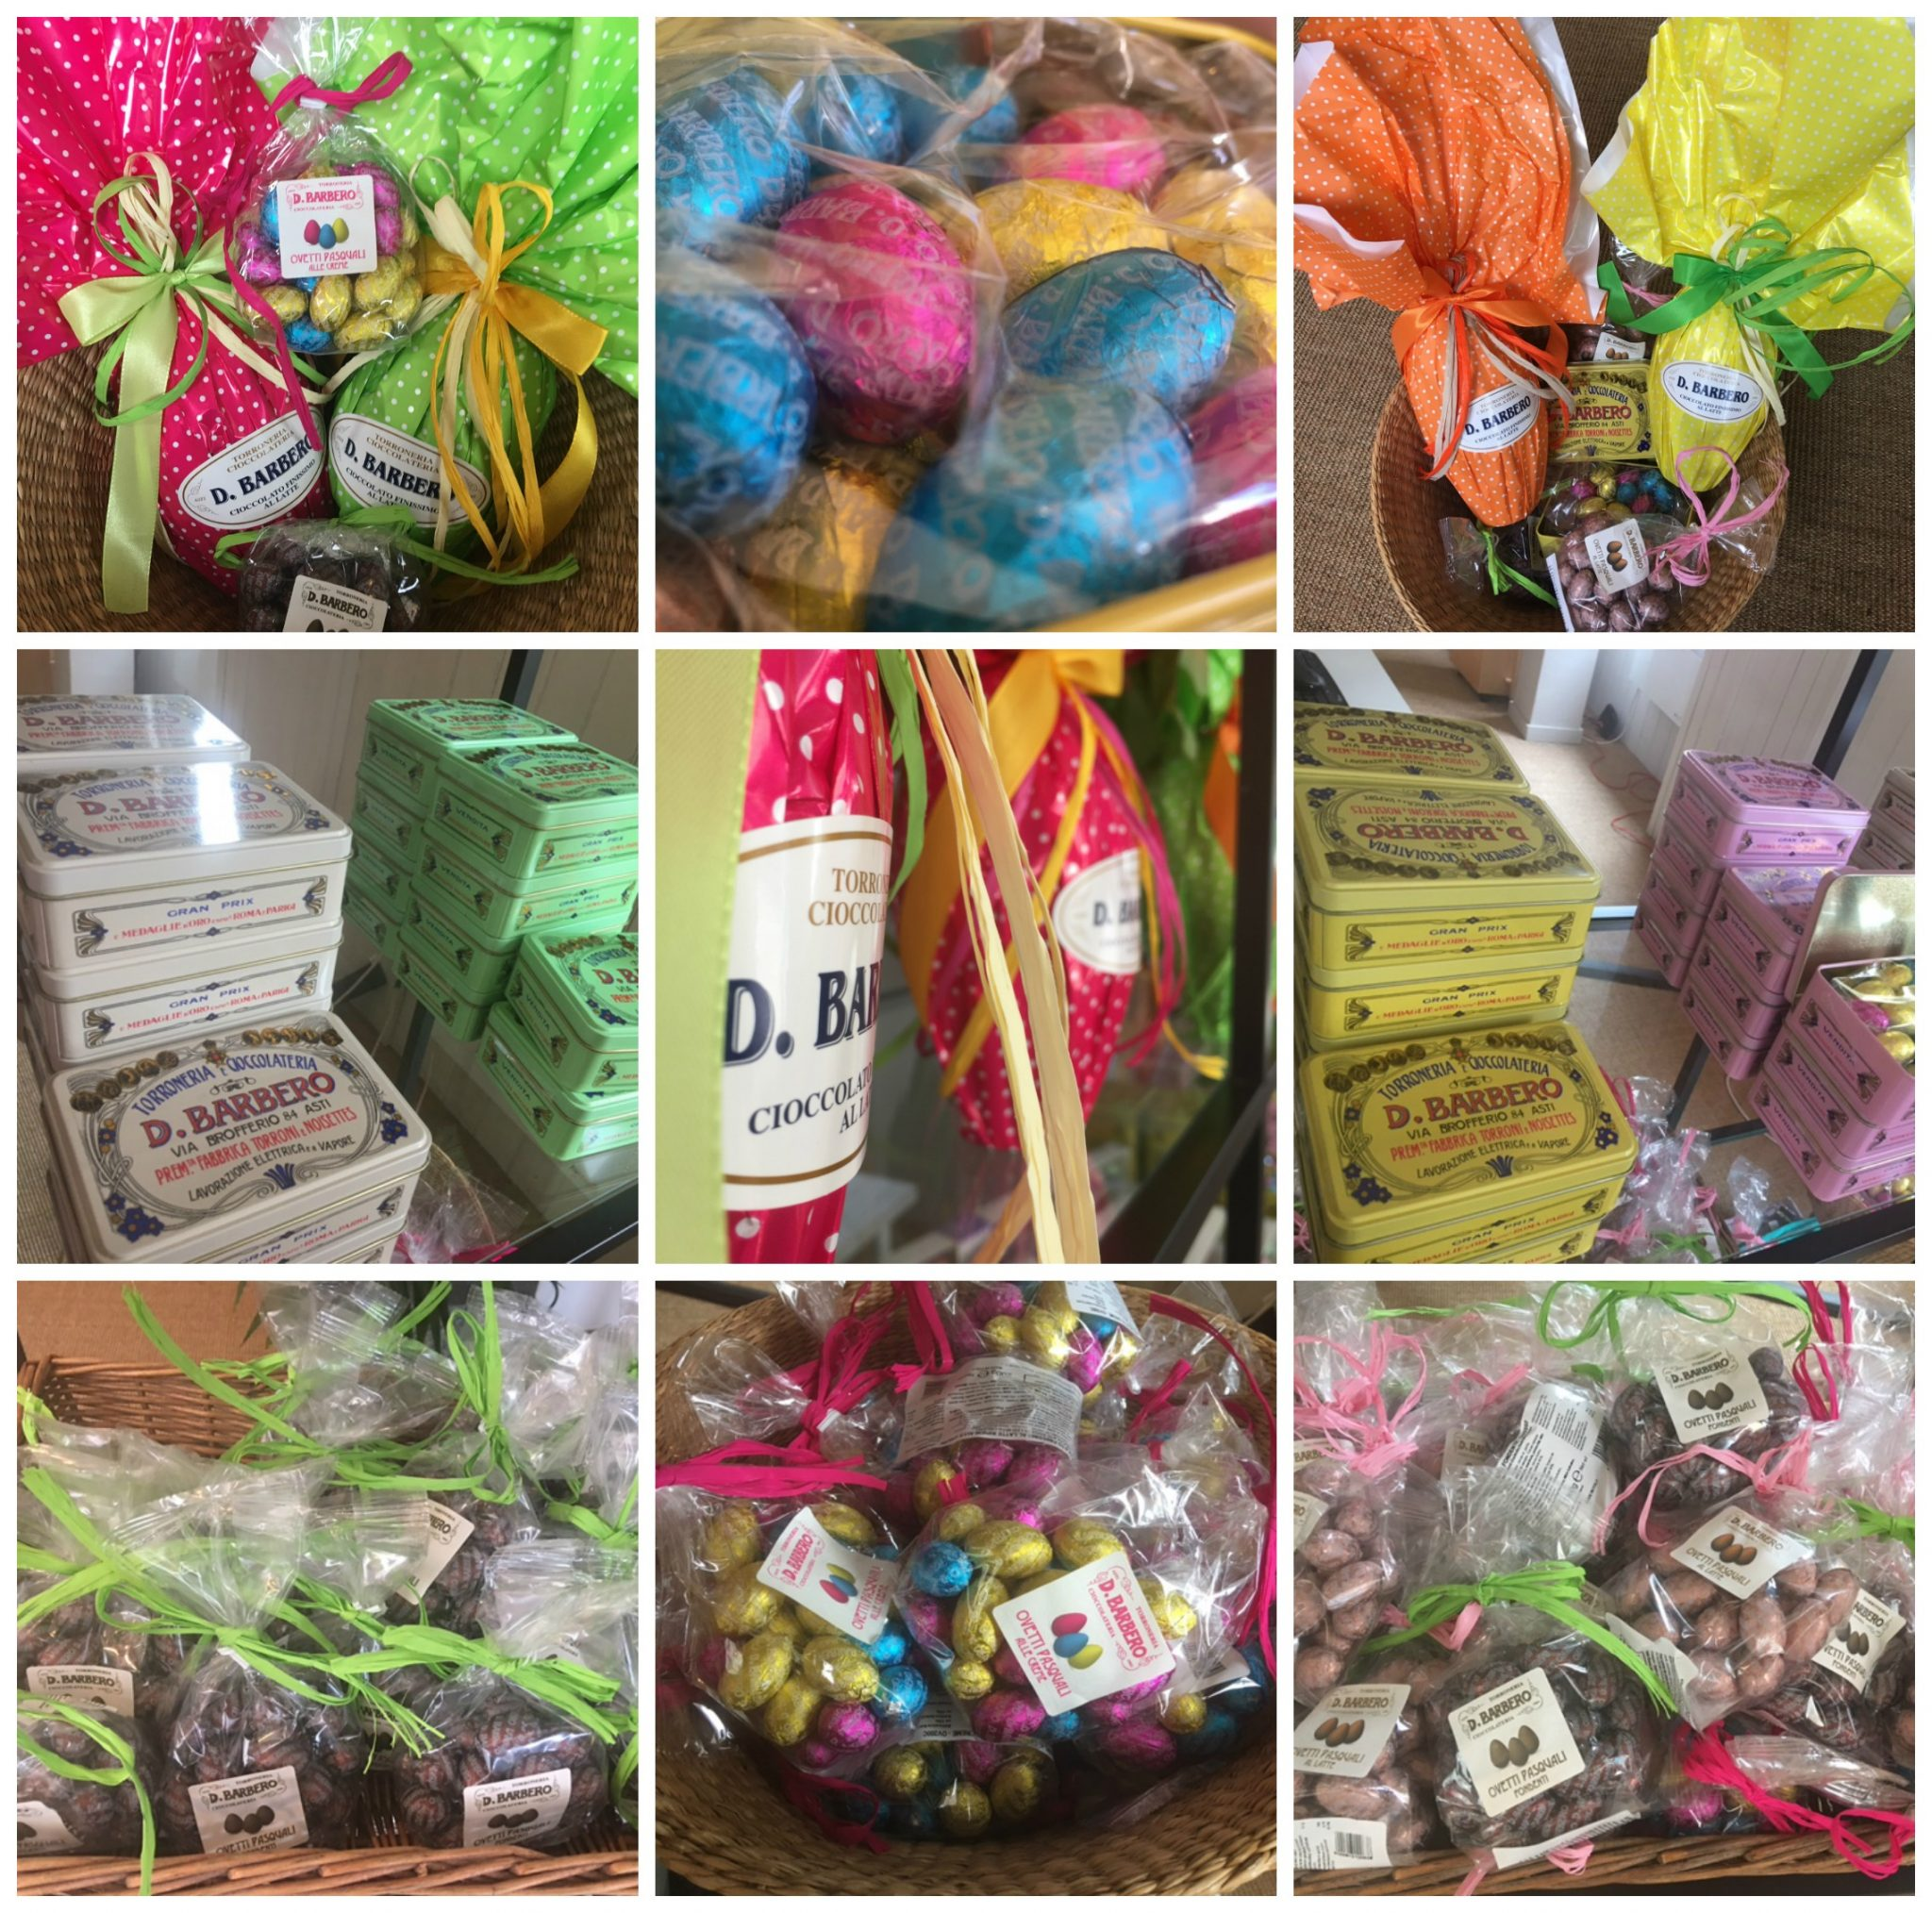 Barbero Easter selection